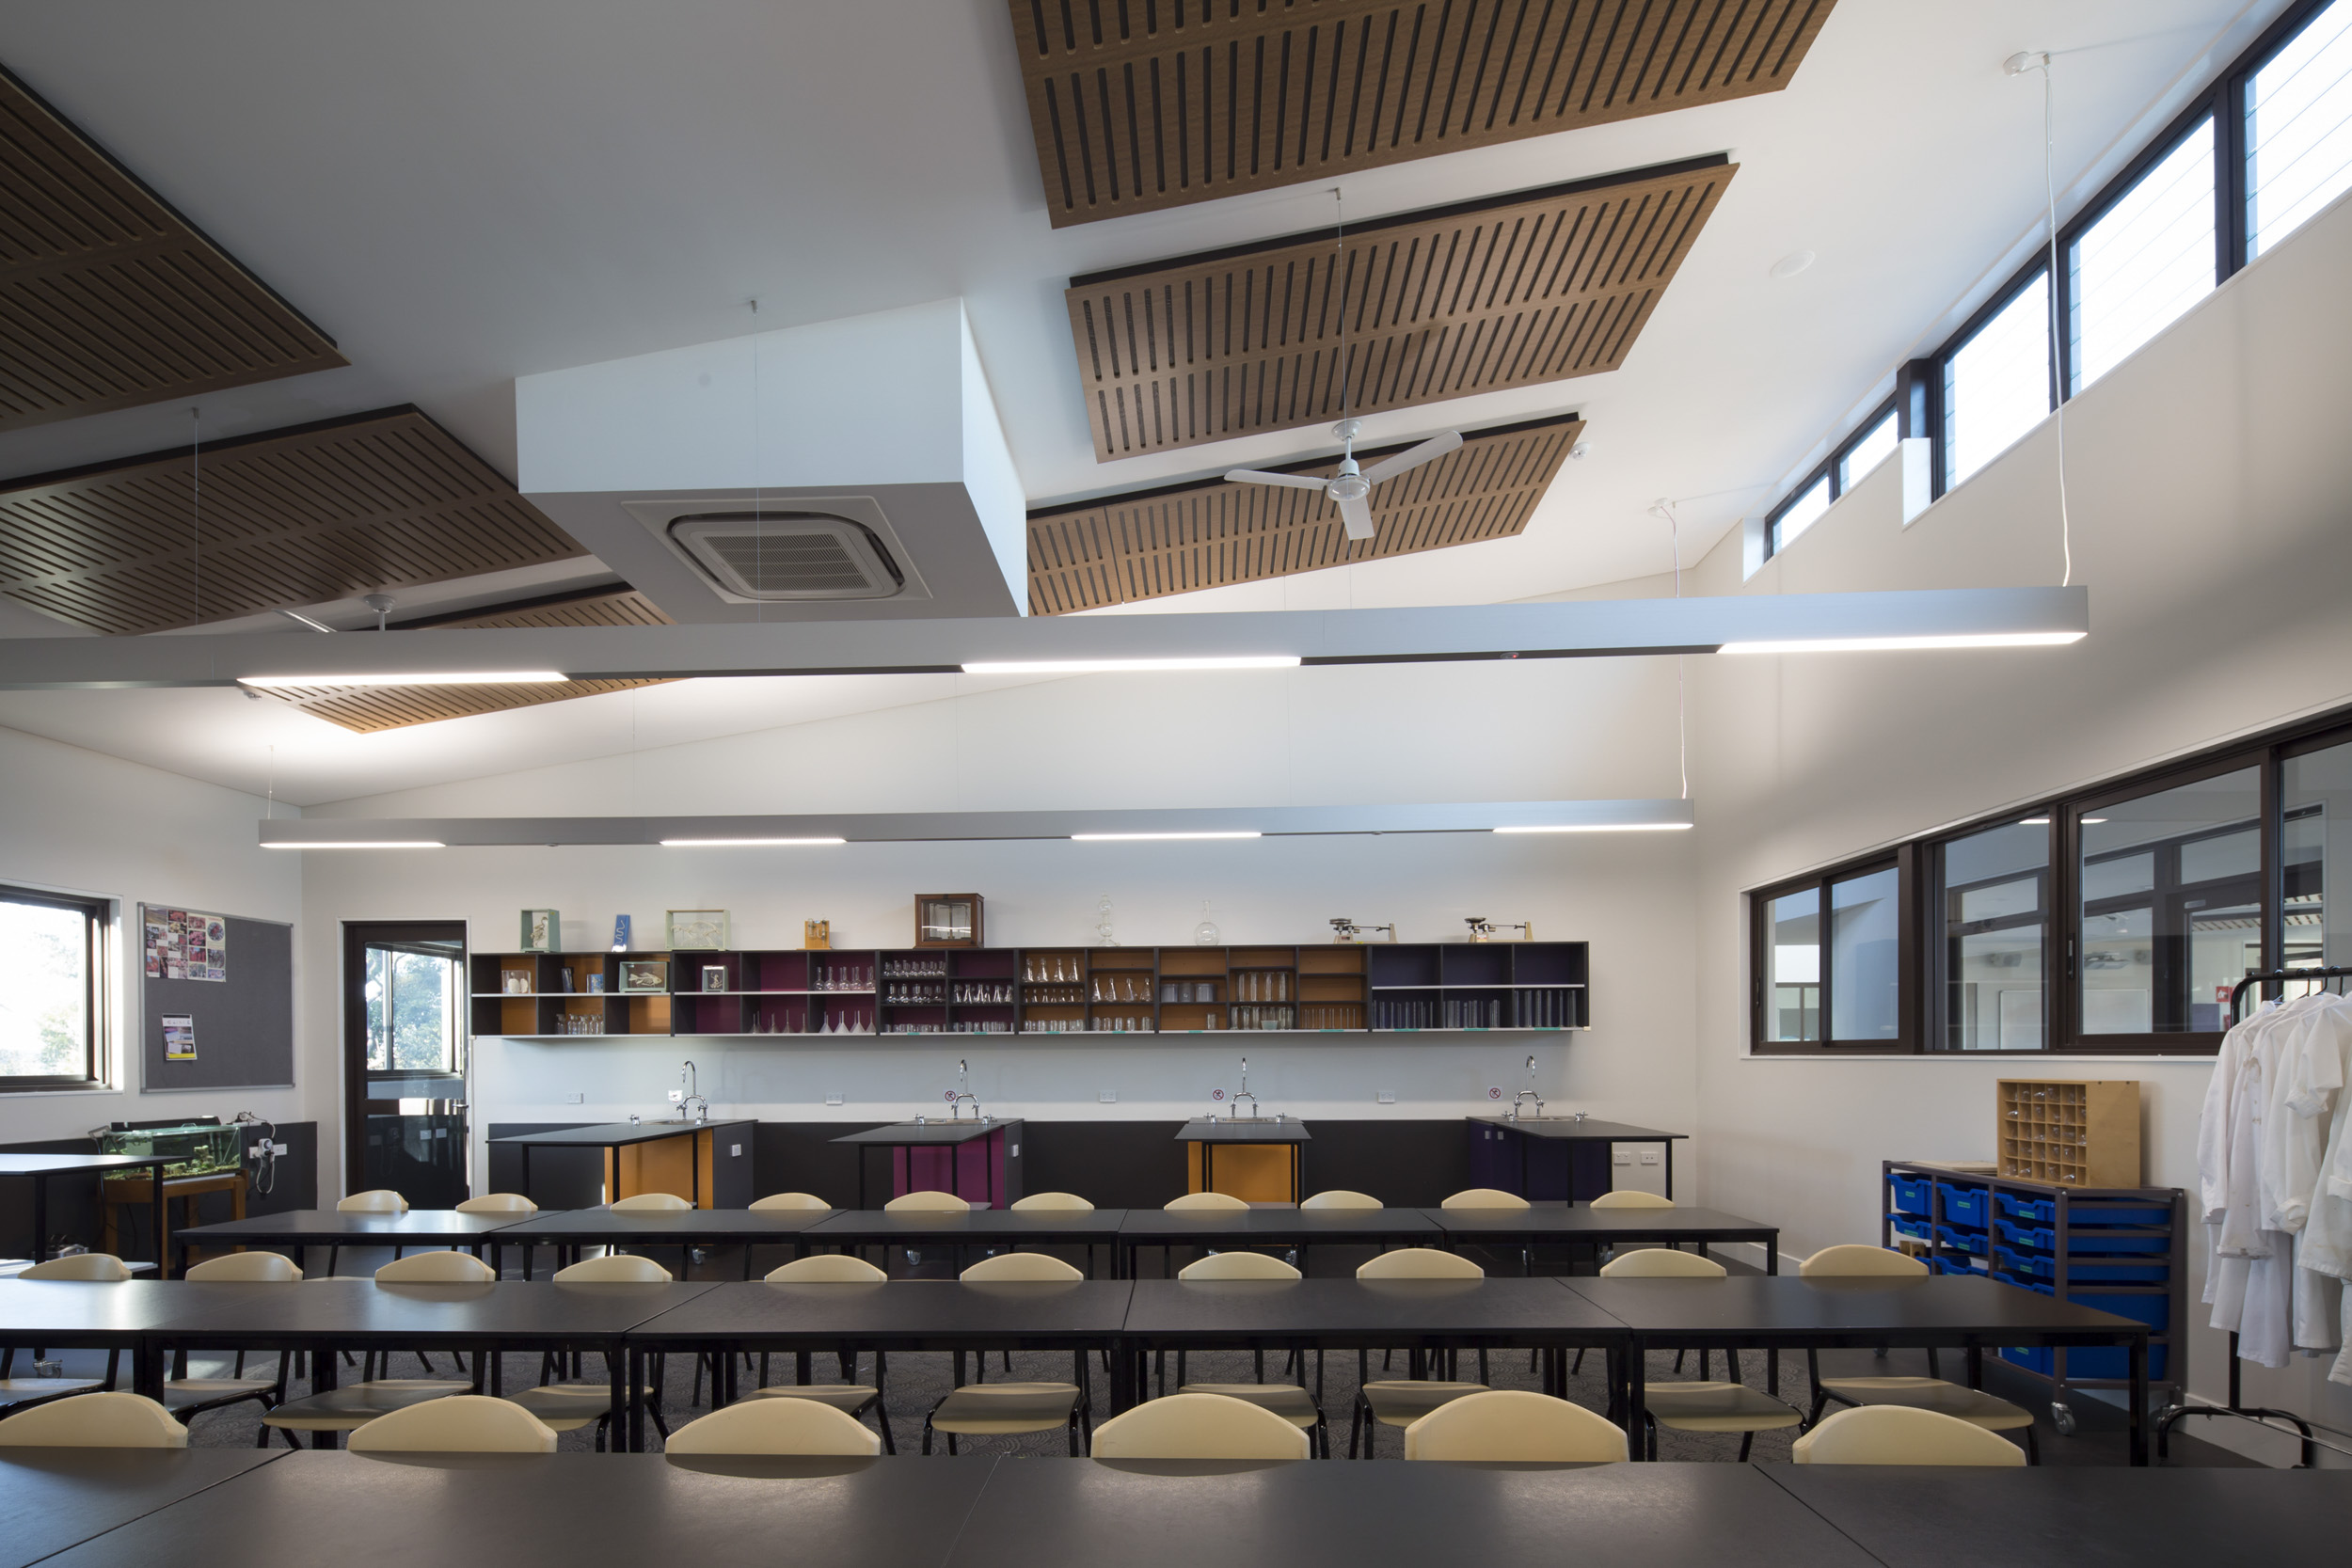 Education-architecture-Sydney_05.jpg